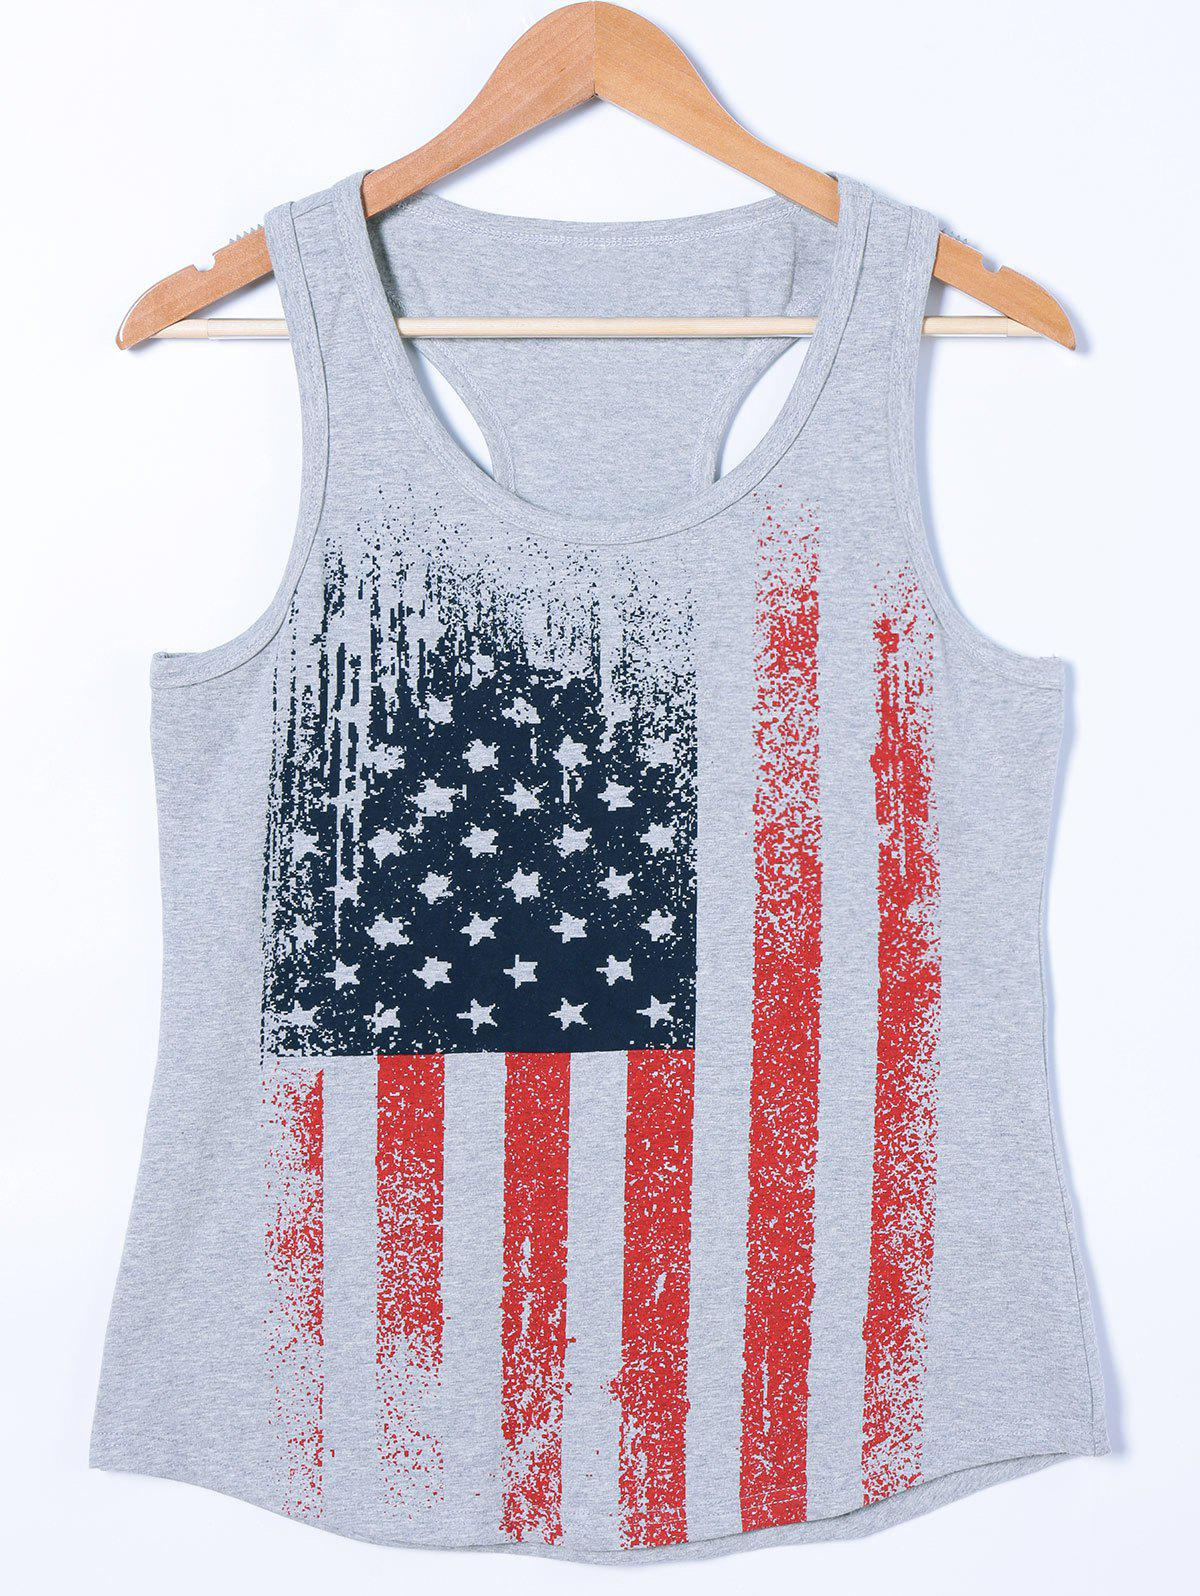 Flag Print Racerback Tank Top - LIGHT GRAY M